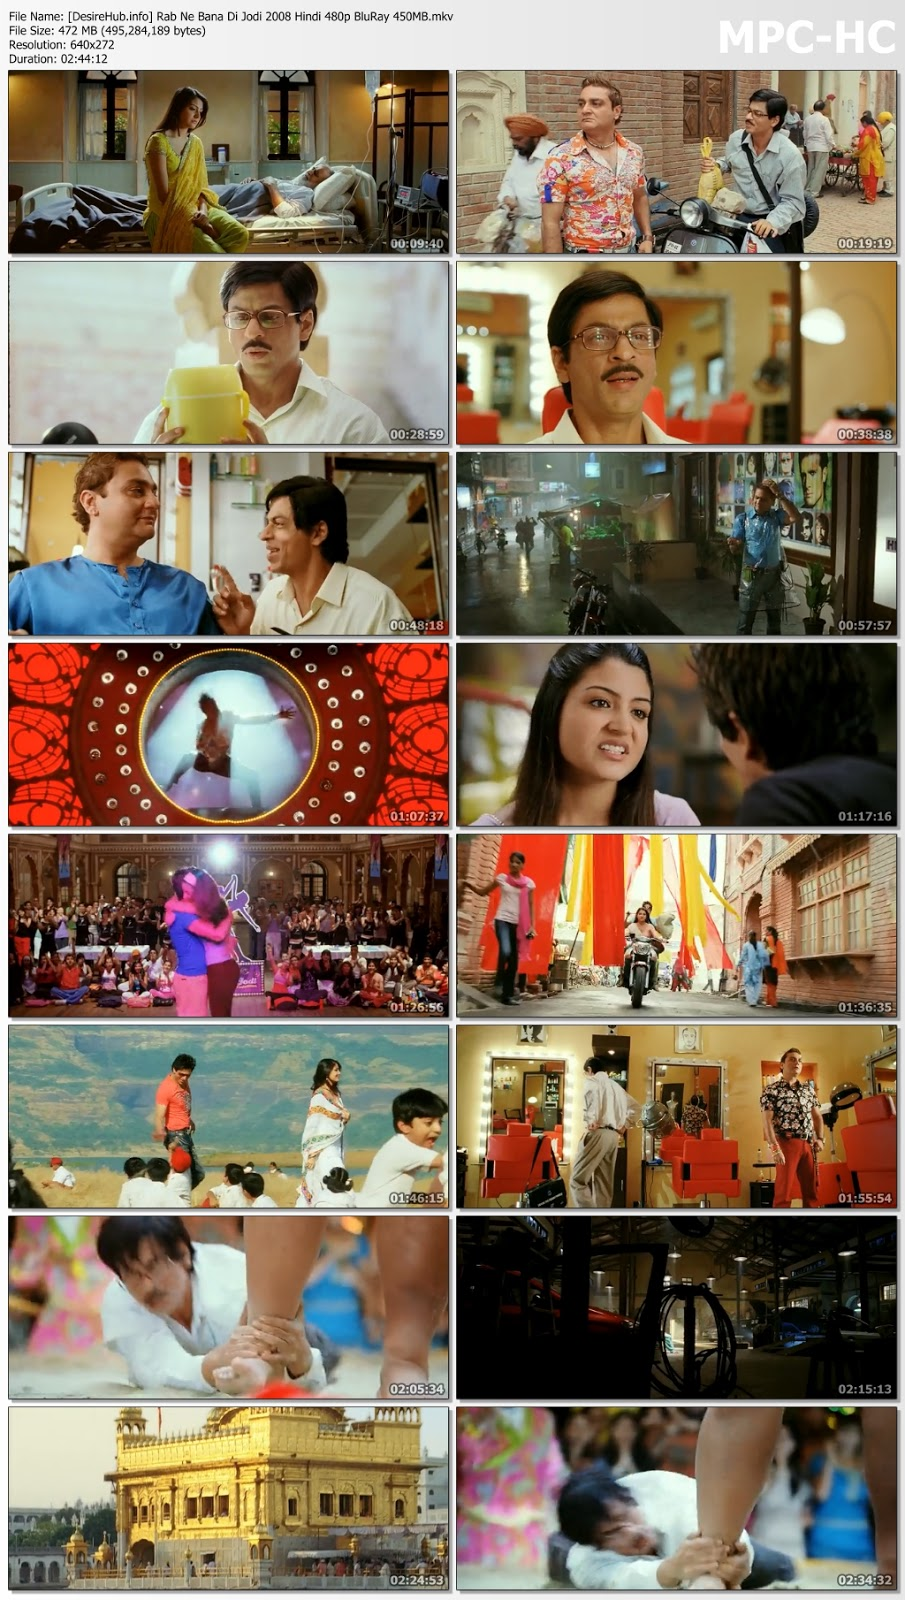 Rab Ne Bana Di Jodi (2008) Hindi 480p BRRip 450MB Desirehub